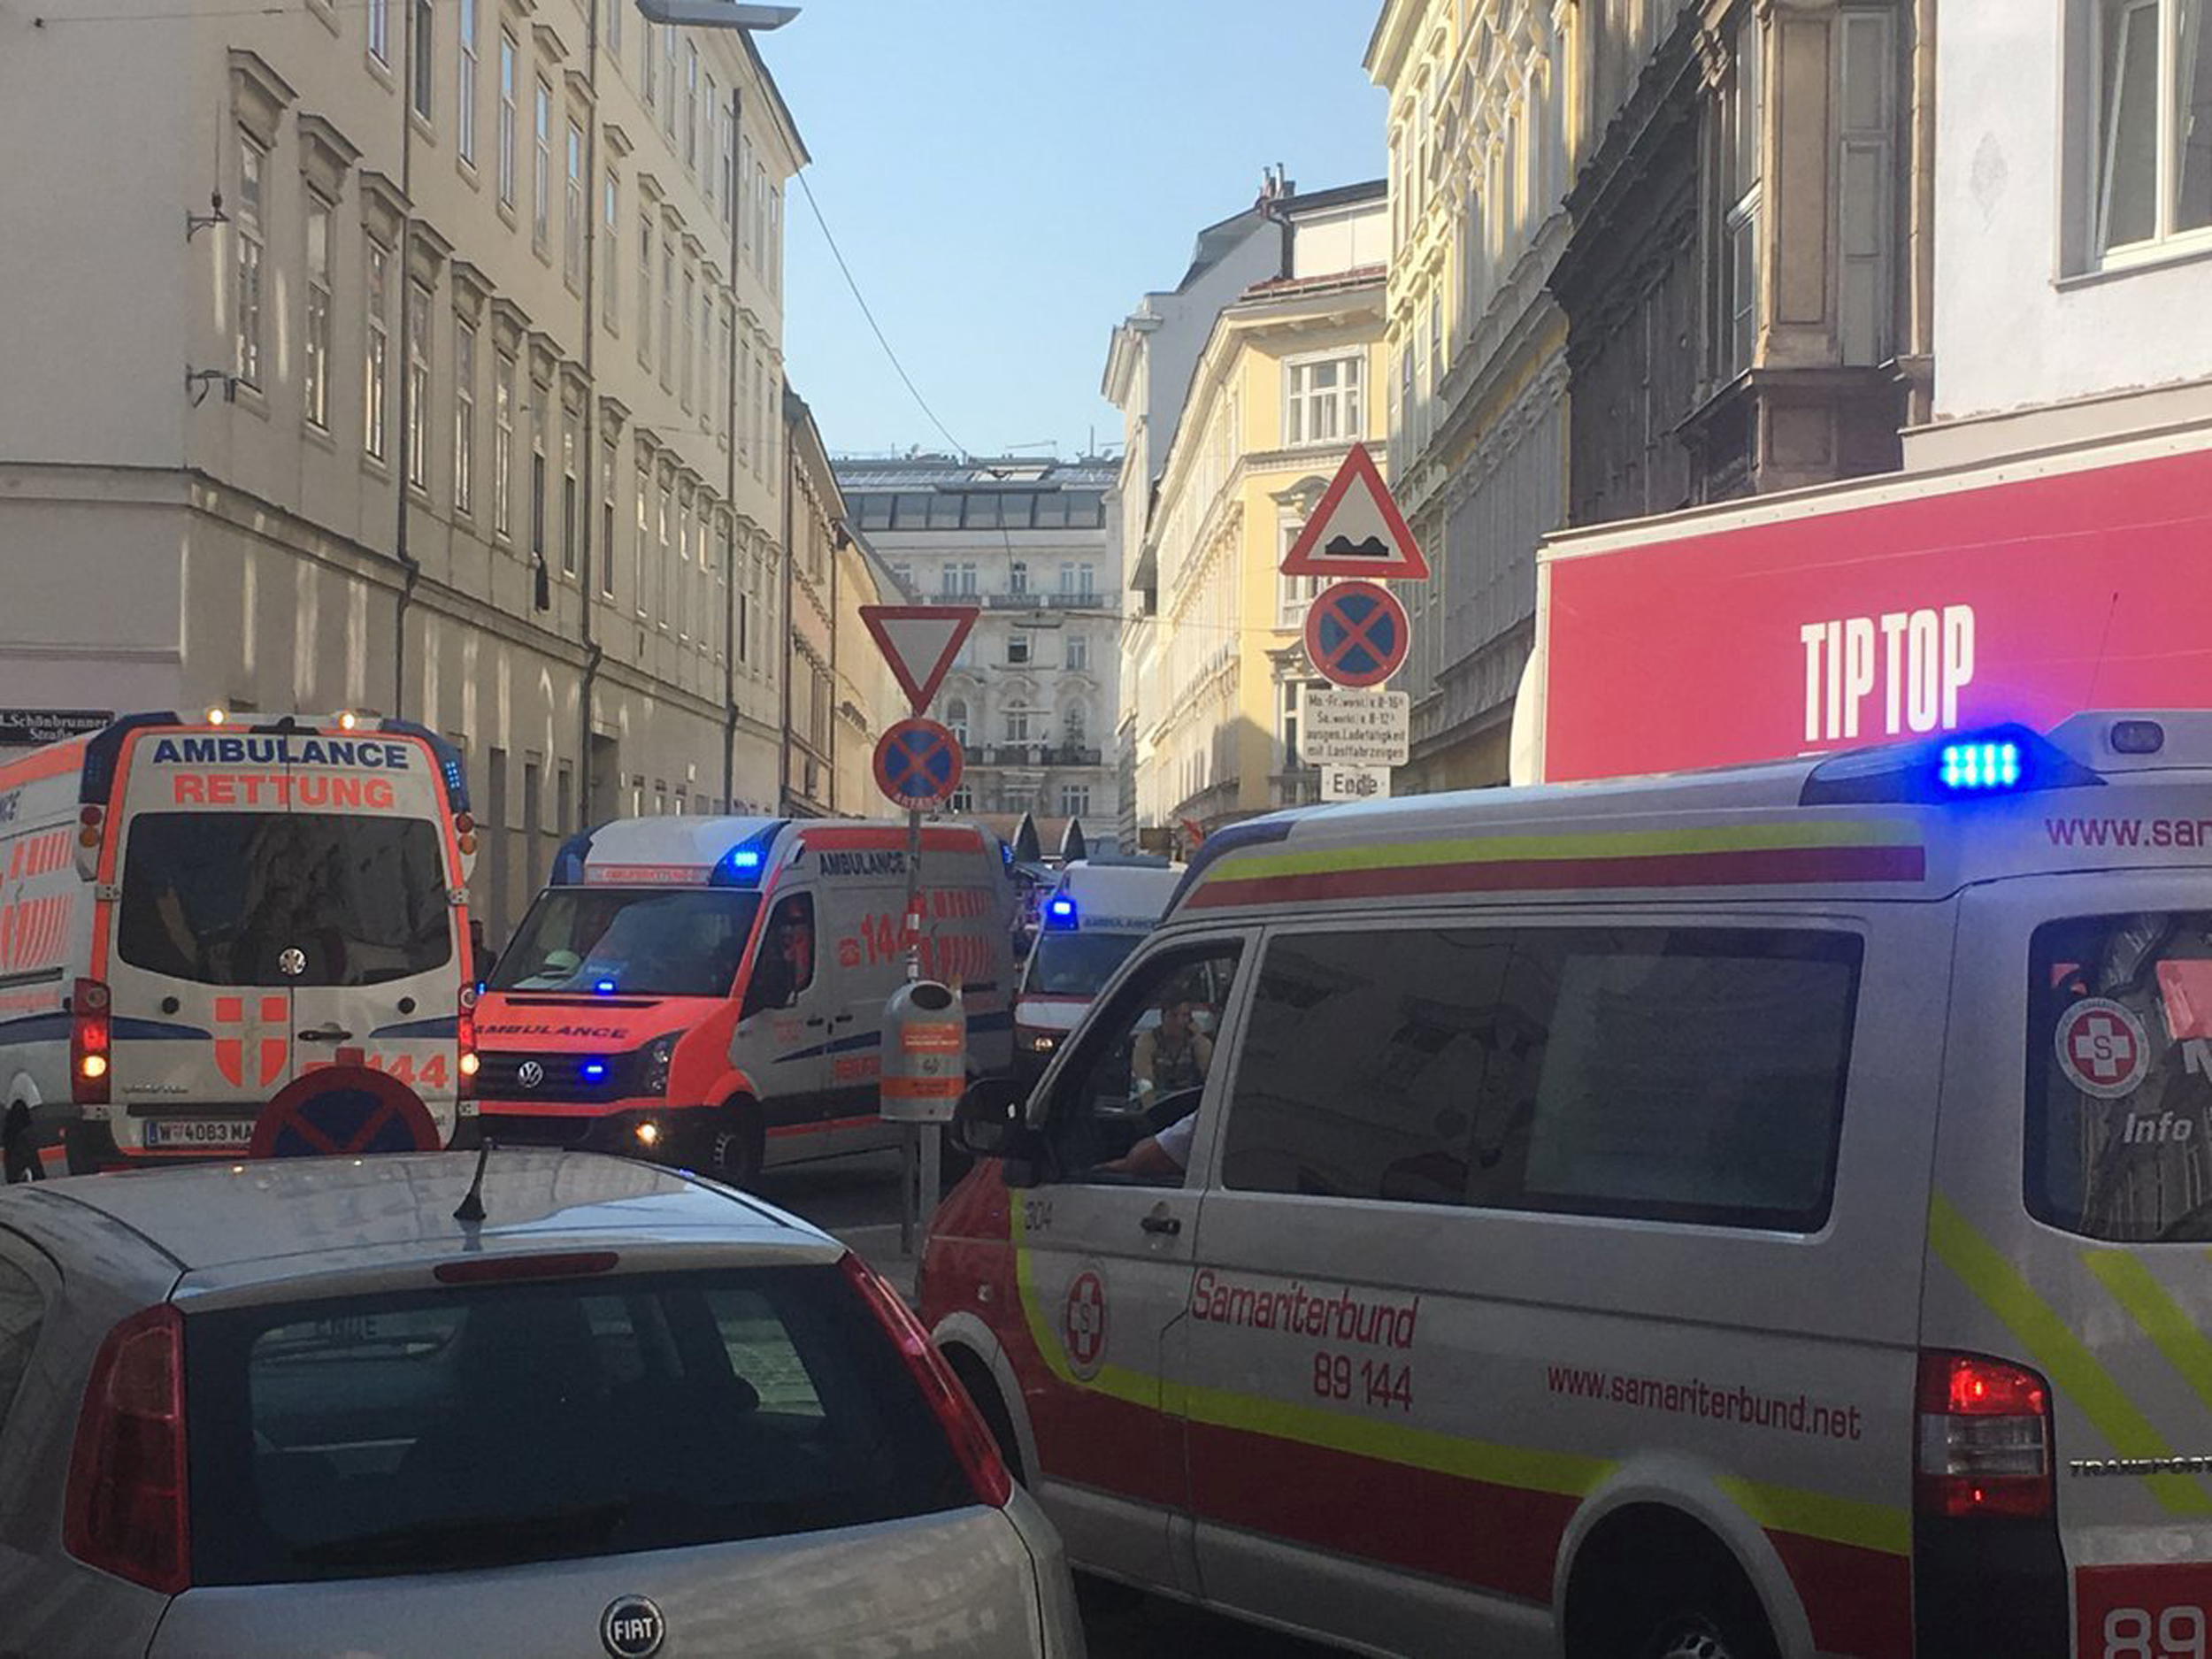 Suspected gas line explosion in Vienna seriously injures at least two people